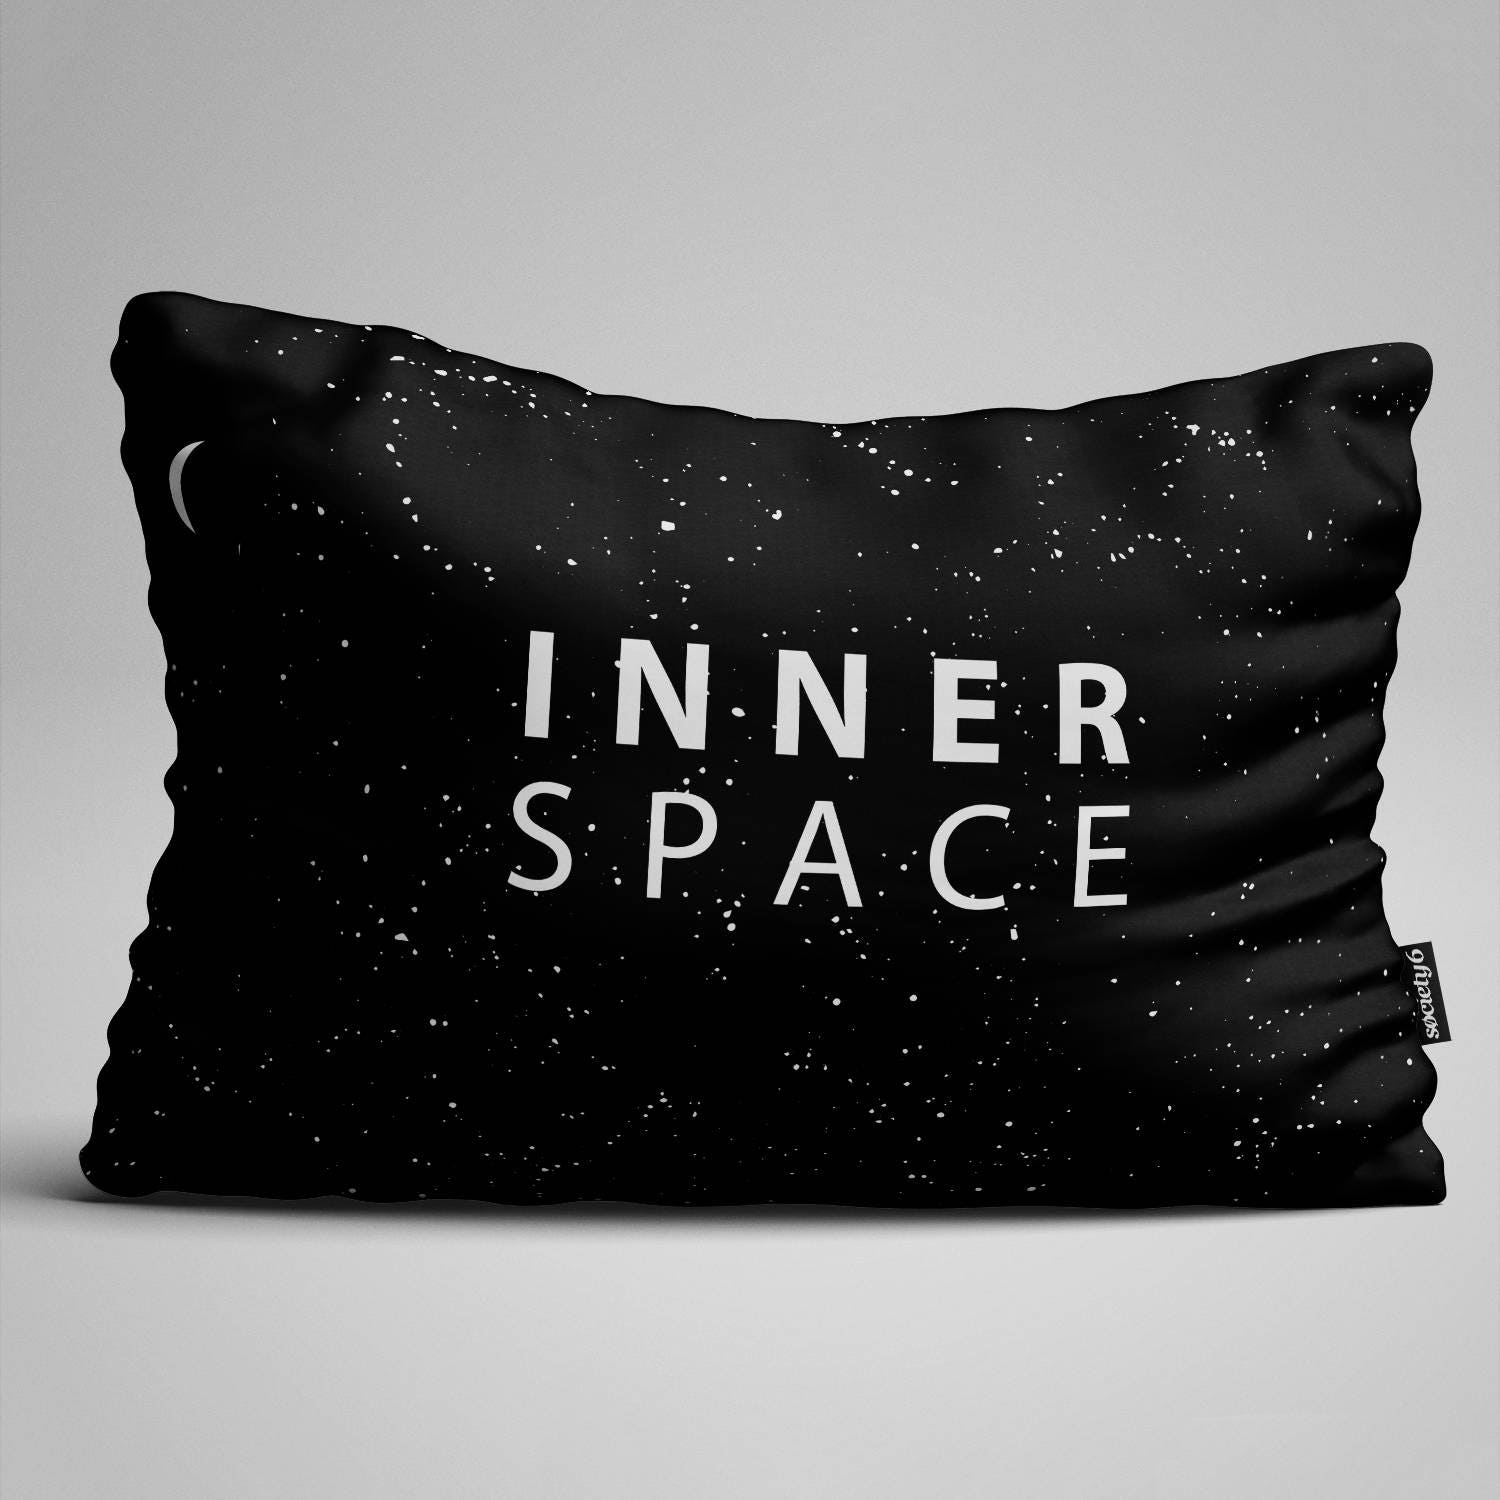 Inner Space Words Lumbar Pillow Throw Pillow Black and White